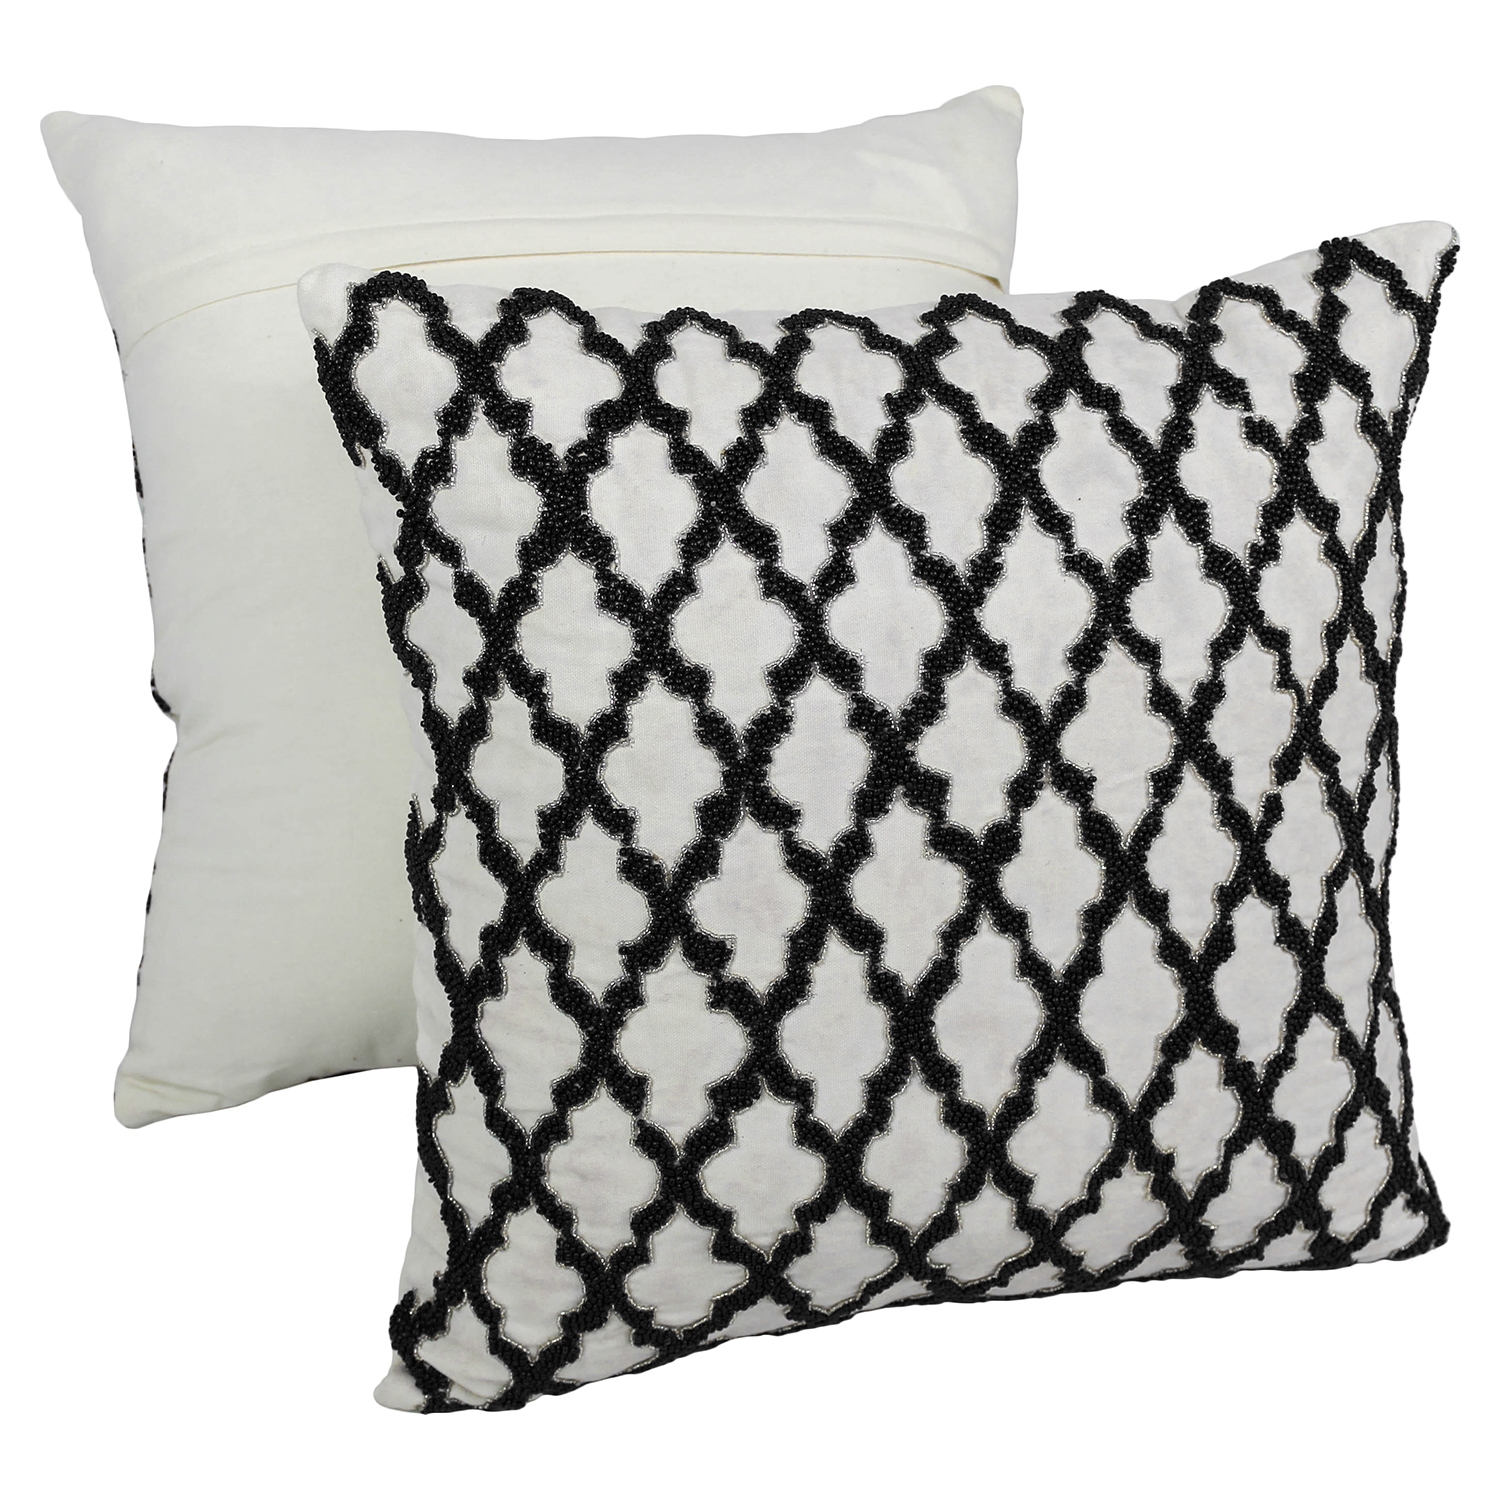 "Moroccan Patterned Beaded 20"" Throw Pillows in Black Beads and Ivory Fabric (Set of 2) - BLZ-IN-21343-20-S2-IV-BK"